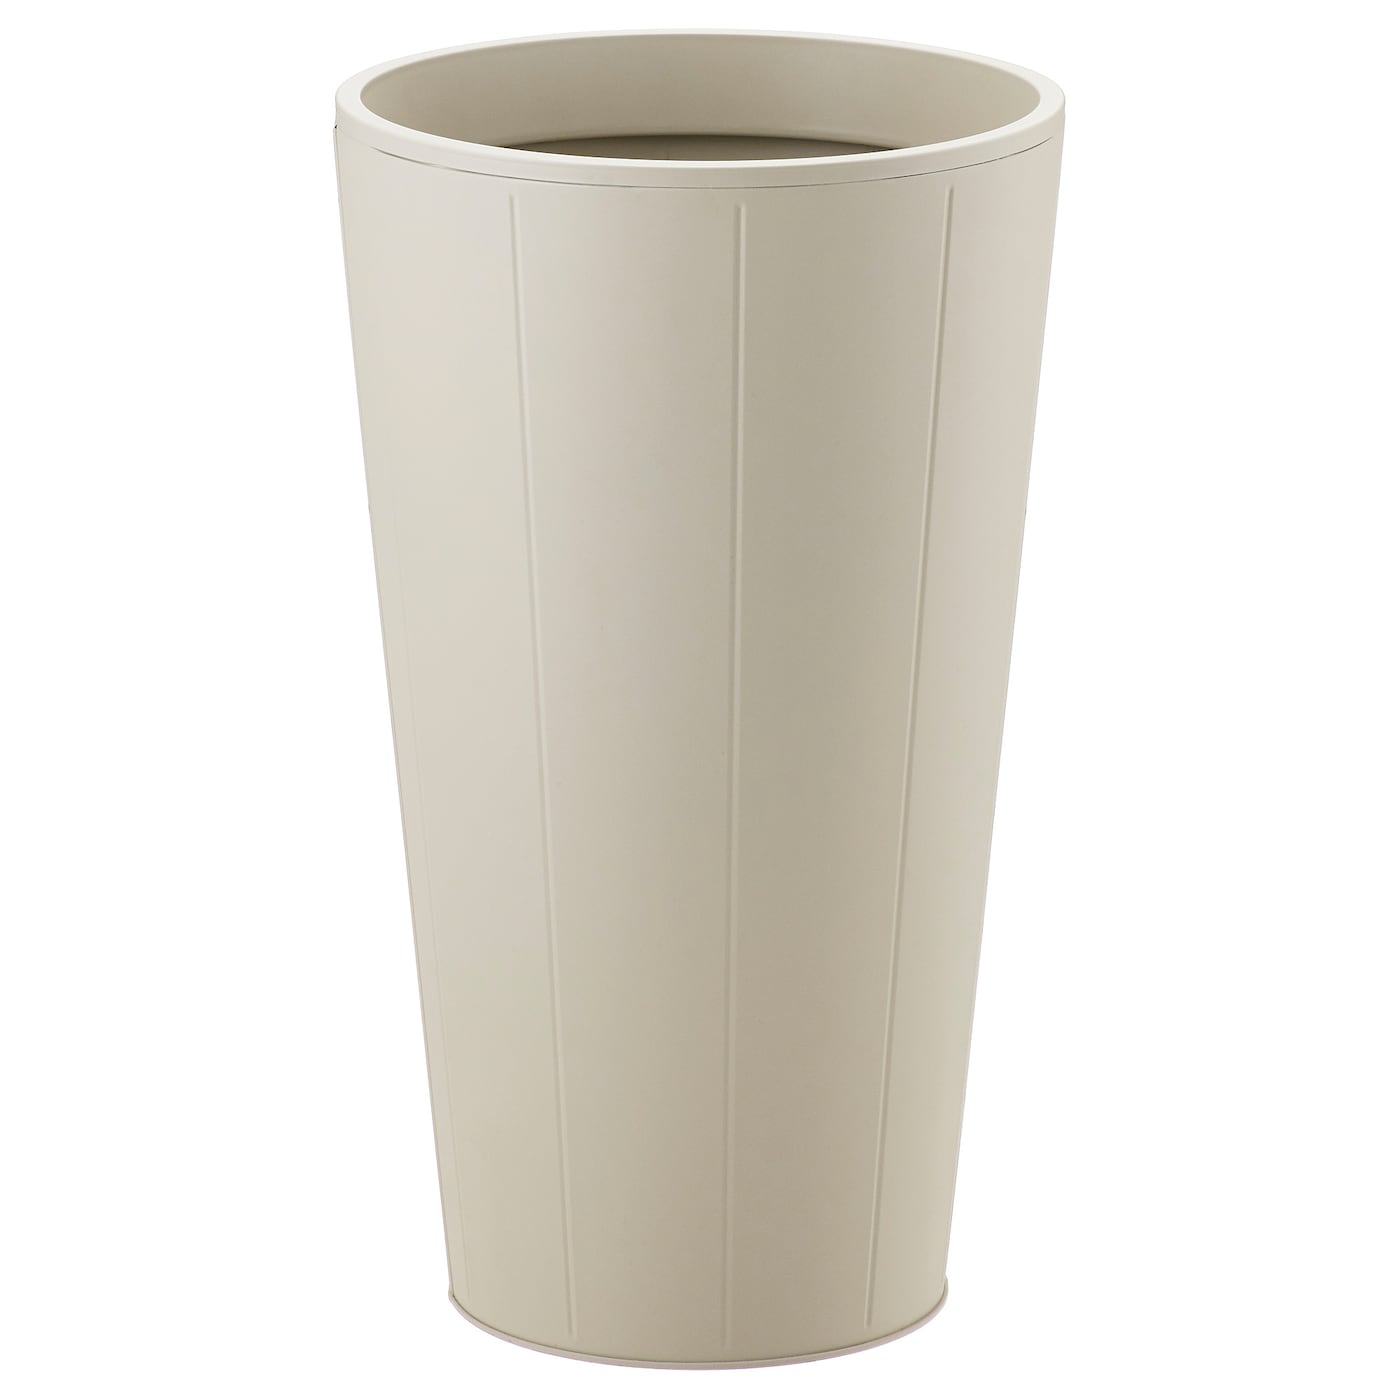 Gr set cache pot ext rieur beige 32 cm ikea for Cache pot exterieur